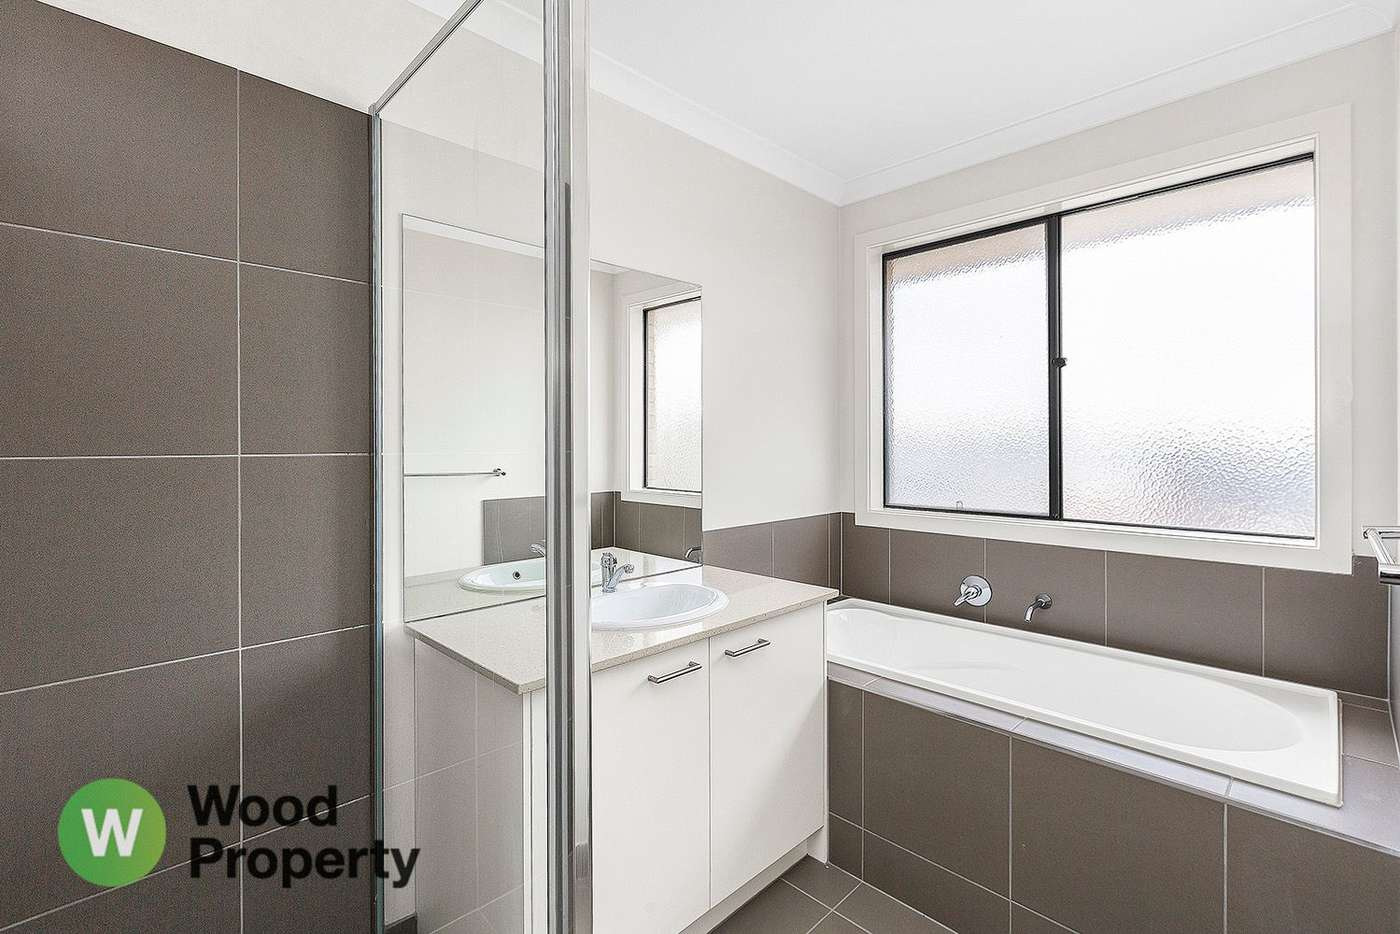 Sixth view of Homely house listing, 8 Tilbury Street, Point Cook VIC 3030